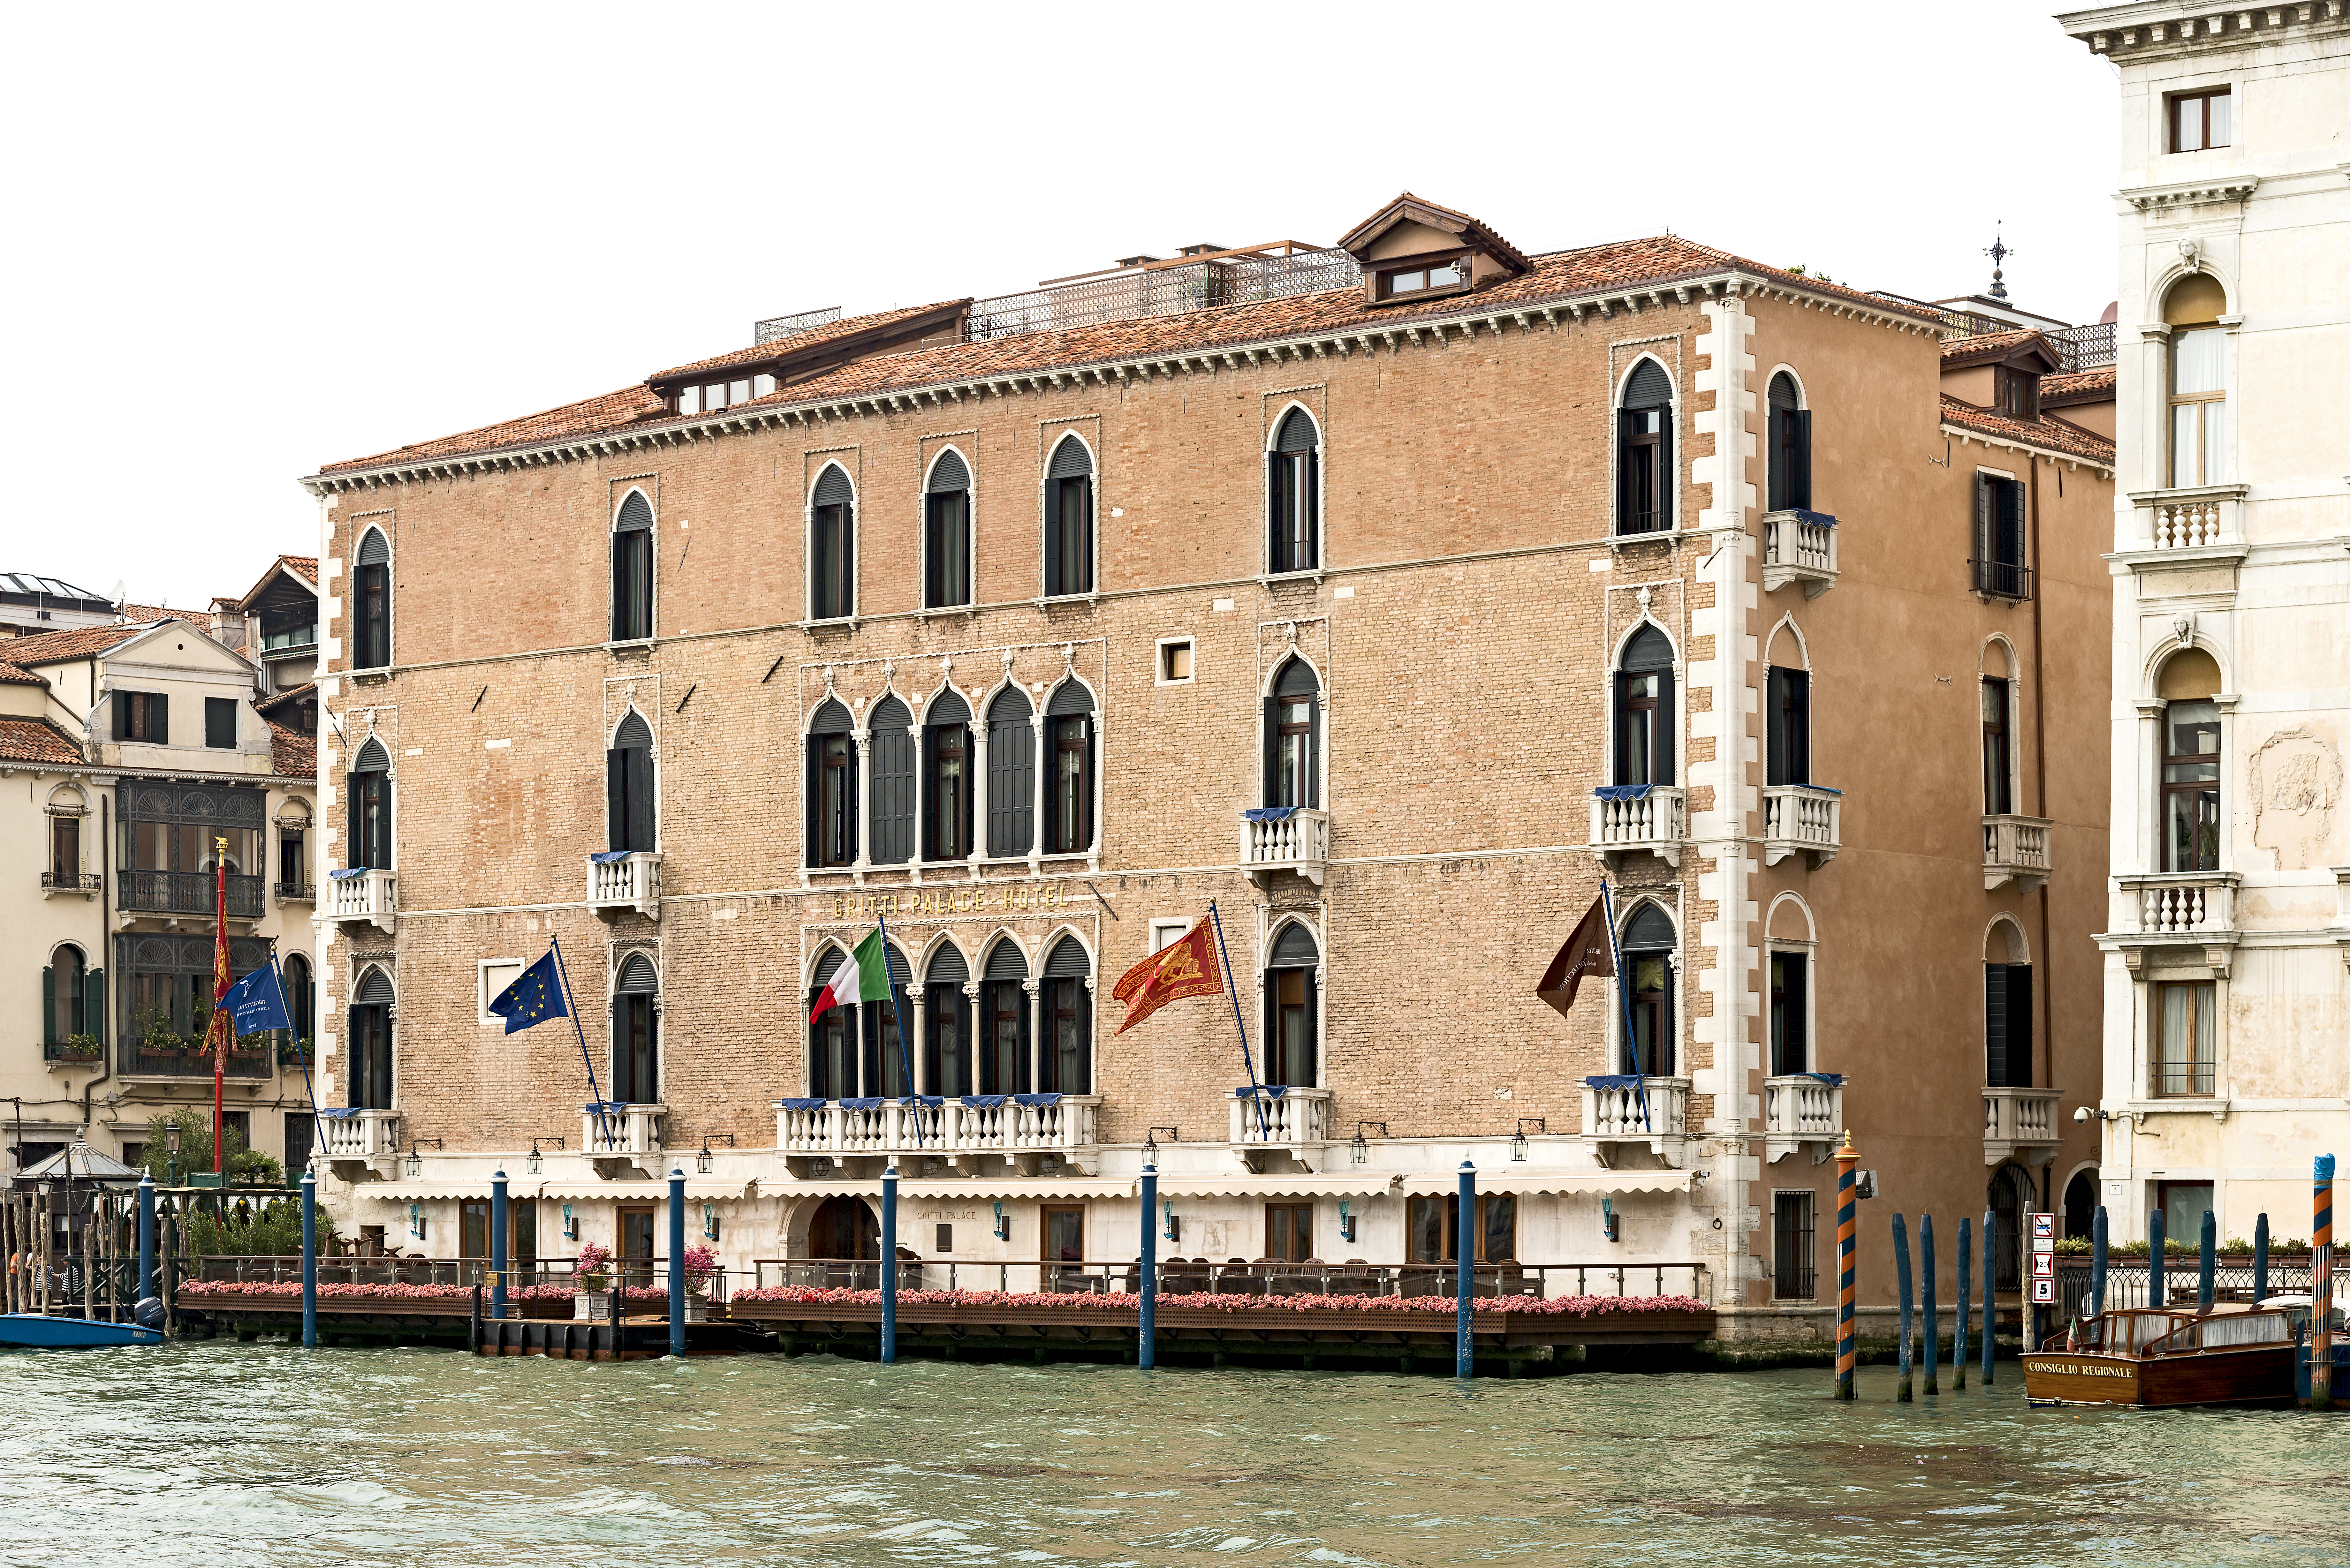 https://upload.wikimedia.org/wikipedia/commons/a/af/Palazzo_Pisani_Gritti_(Venice).jpg